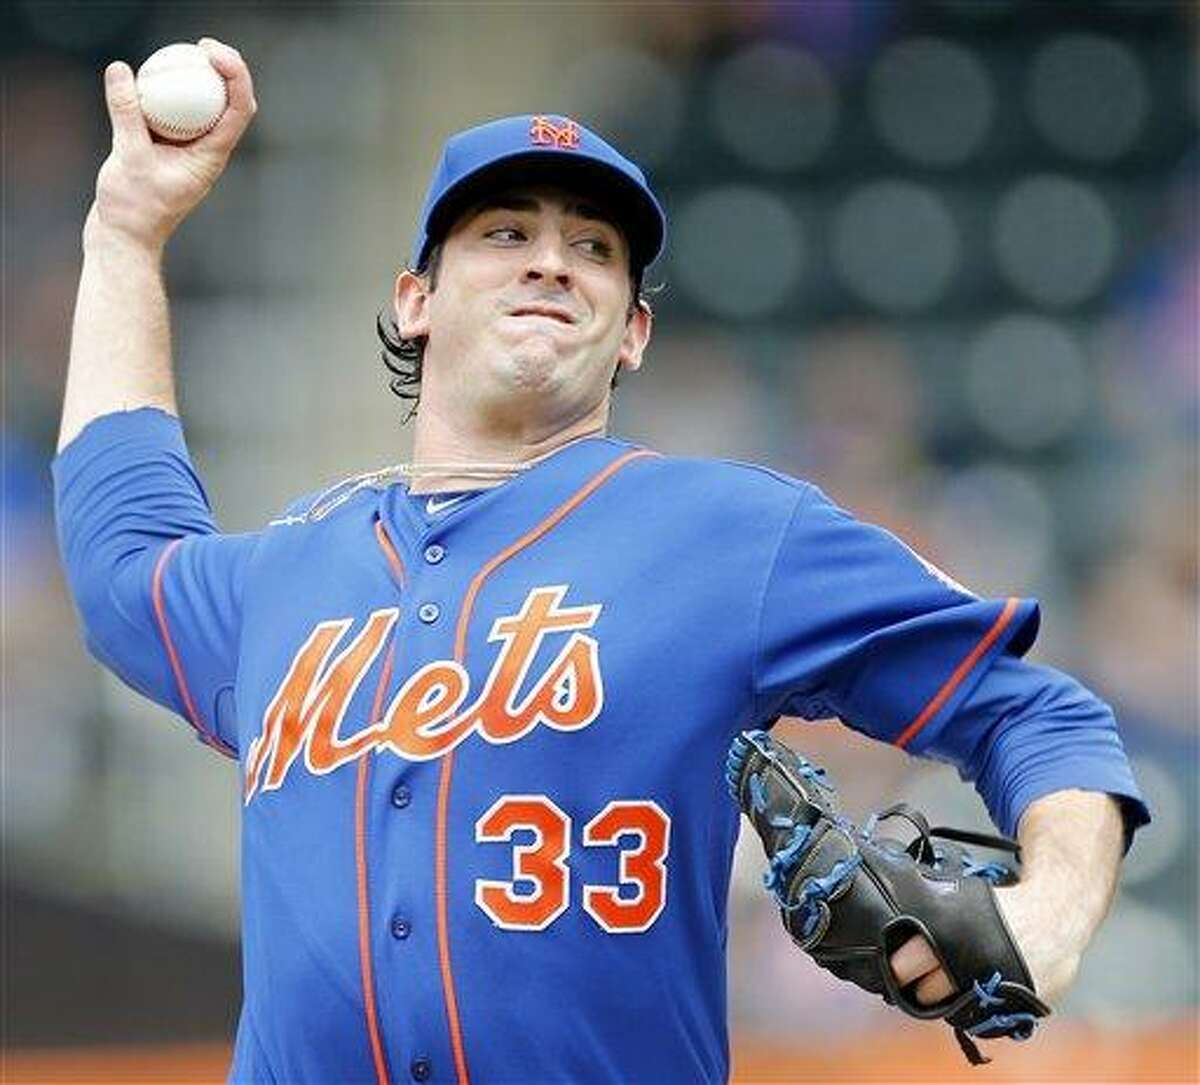 New York Mets starting pitcher Matt Harvey (33) throws a pitch in the second inning of a baseball game against the Miami Marlins at Citi Field in New York, Saturday, June 8, 2013. (AP Photo/Paul J. Bereswill)